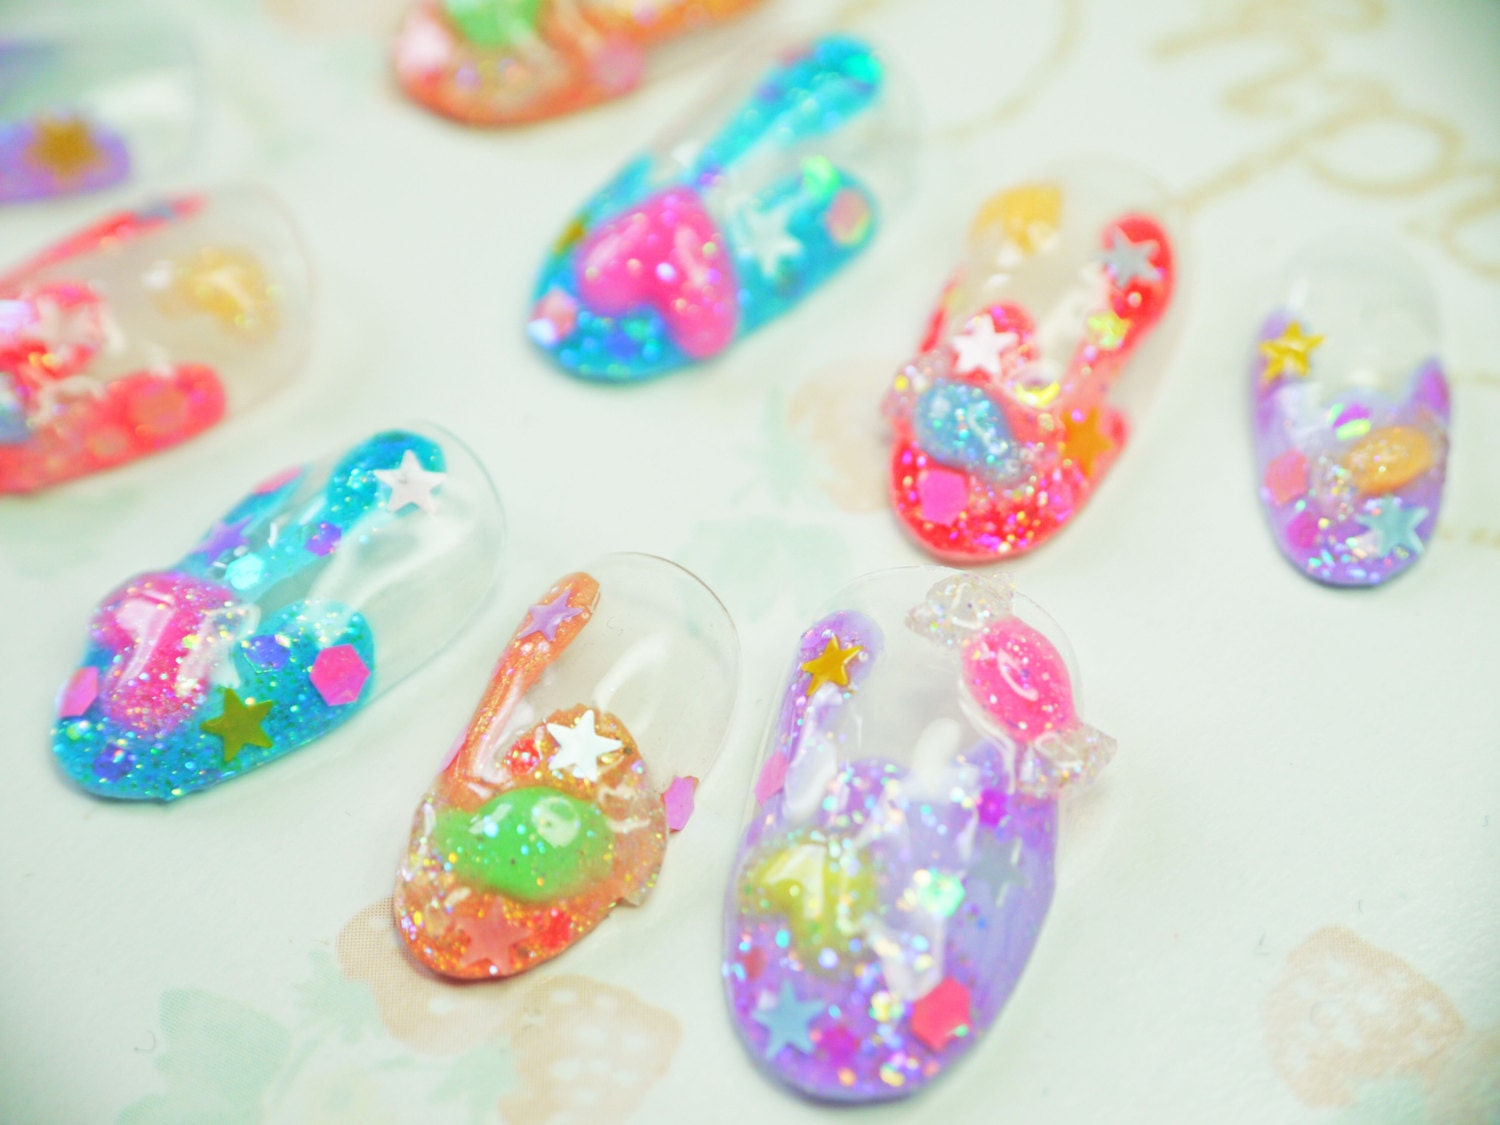 Japanese Kawaii Halloween 3D nail art false nail fake nails